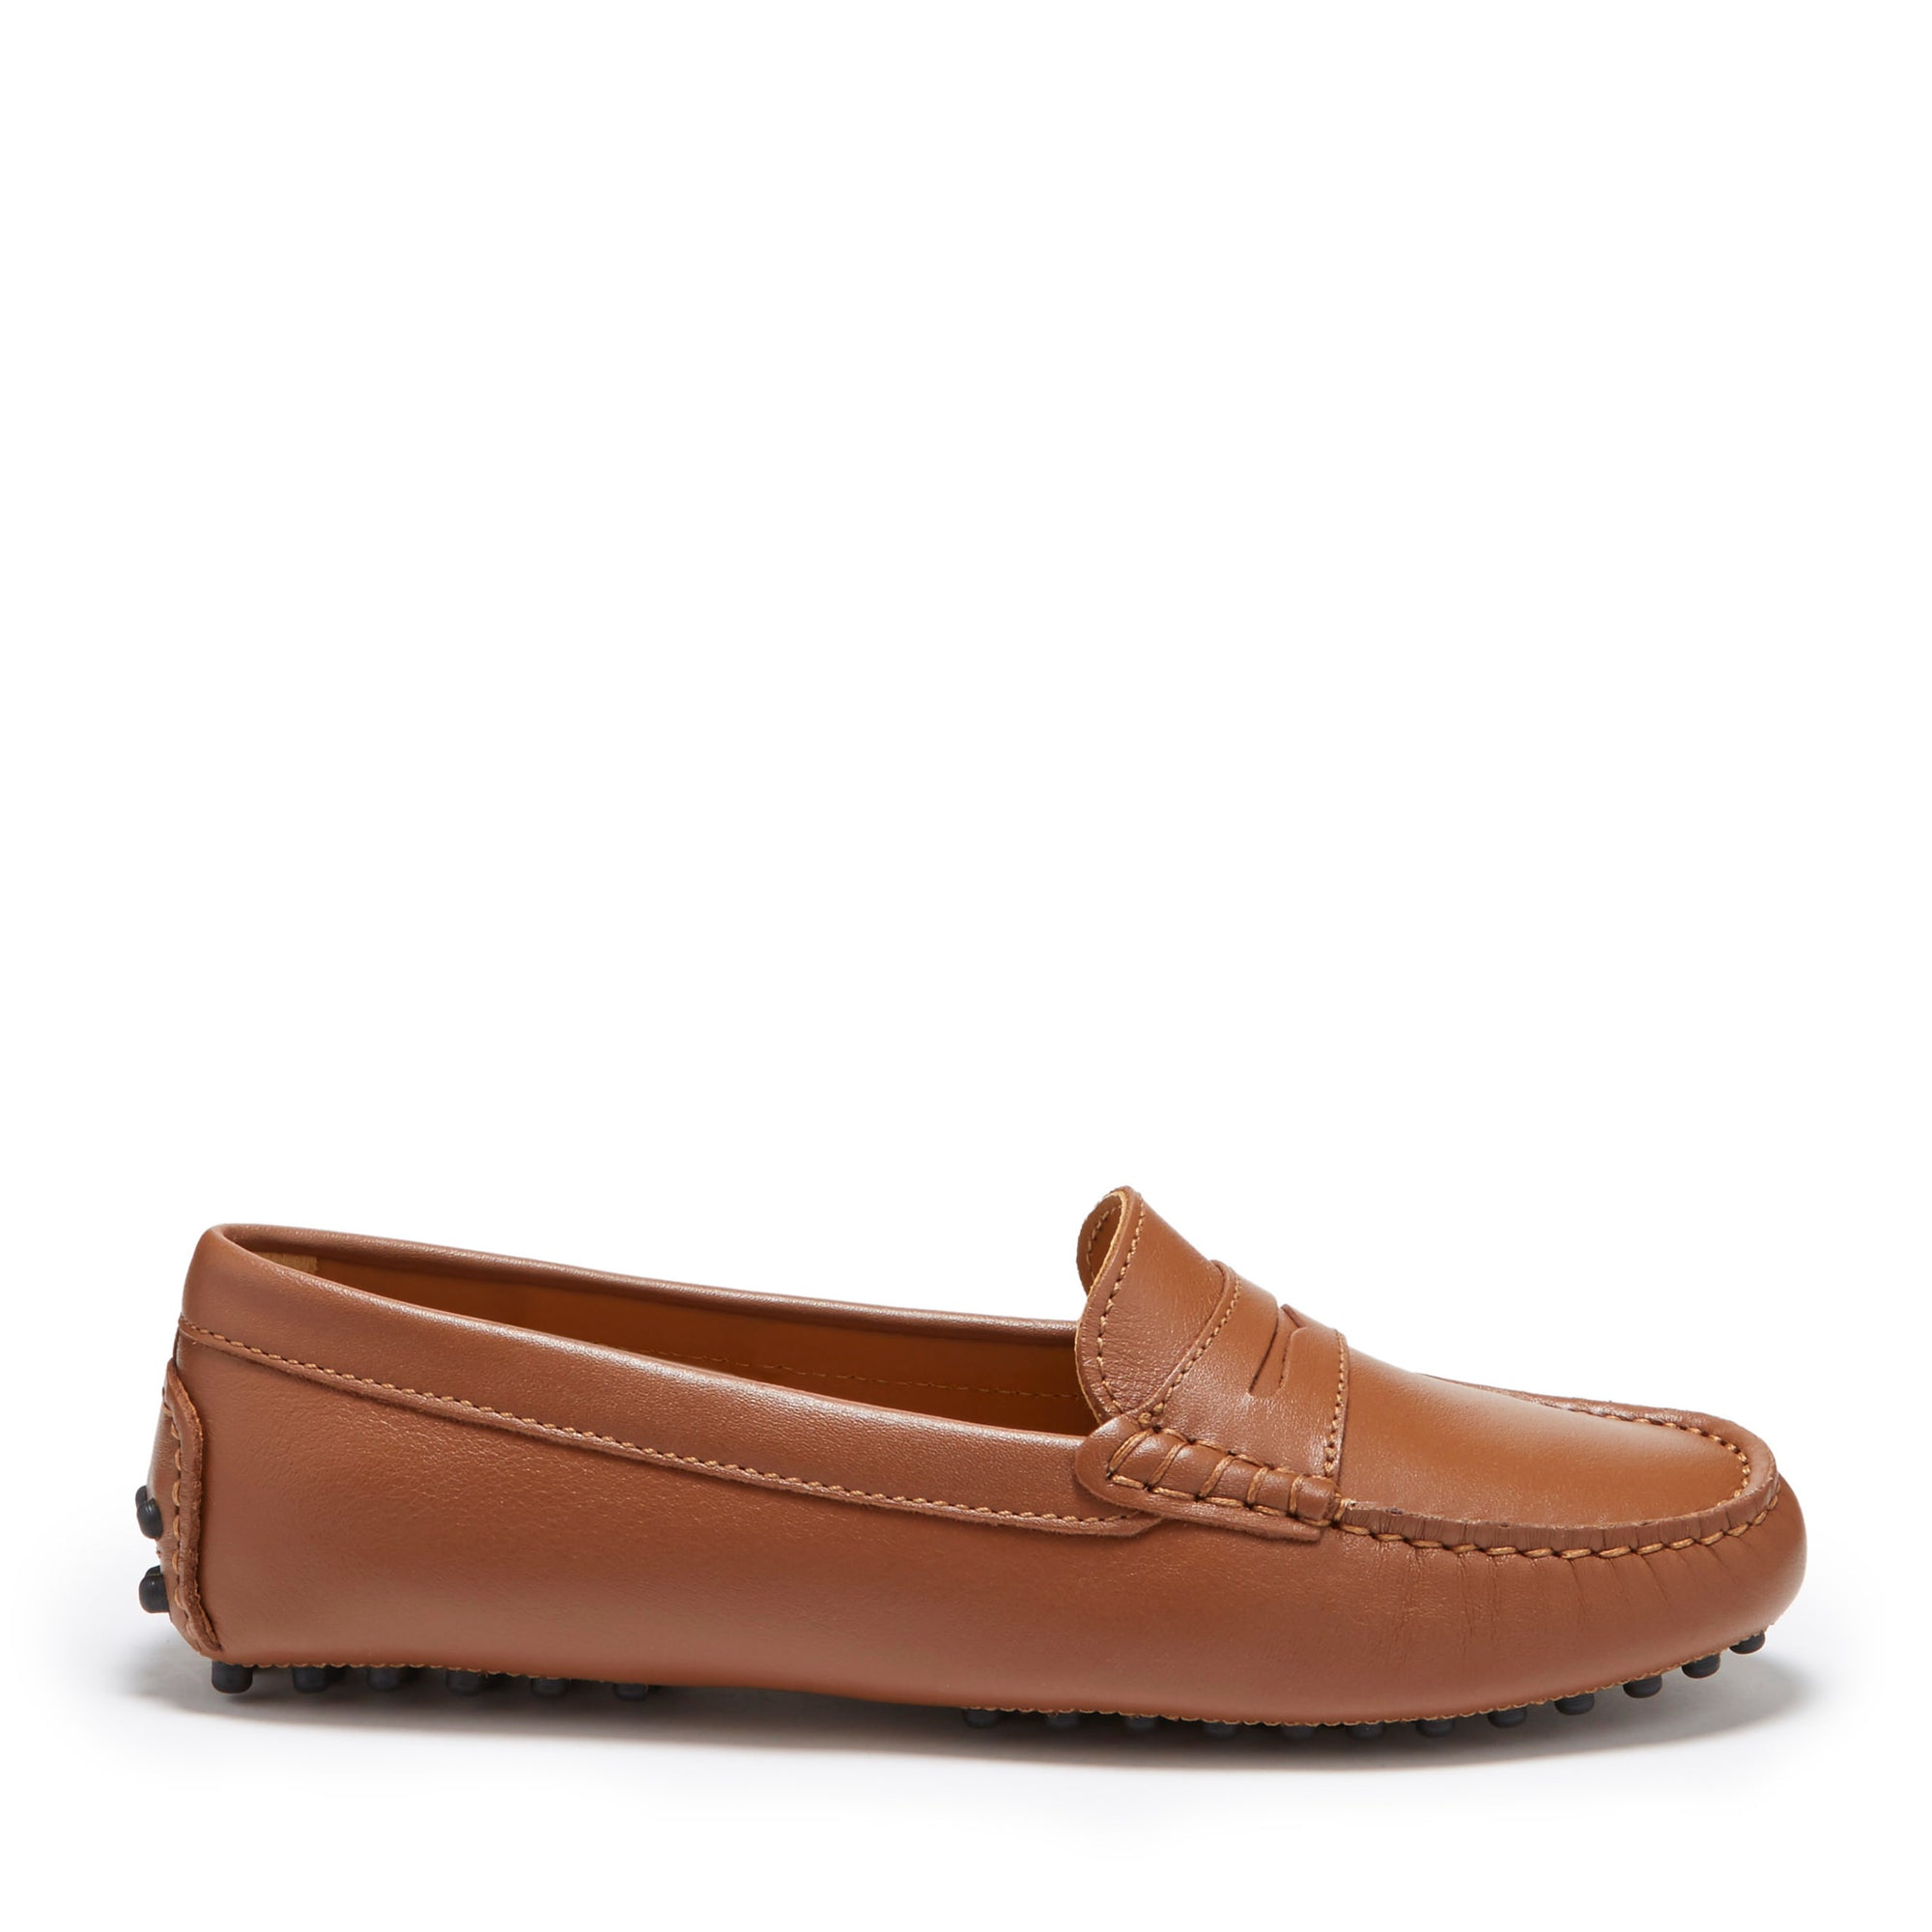 Women's Penny Driving Loafers, tan leather